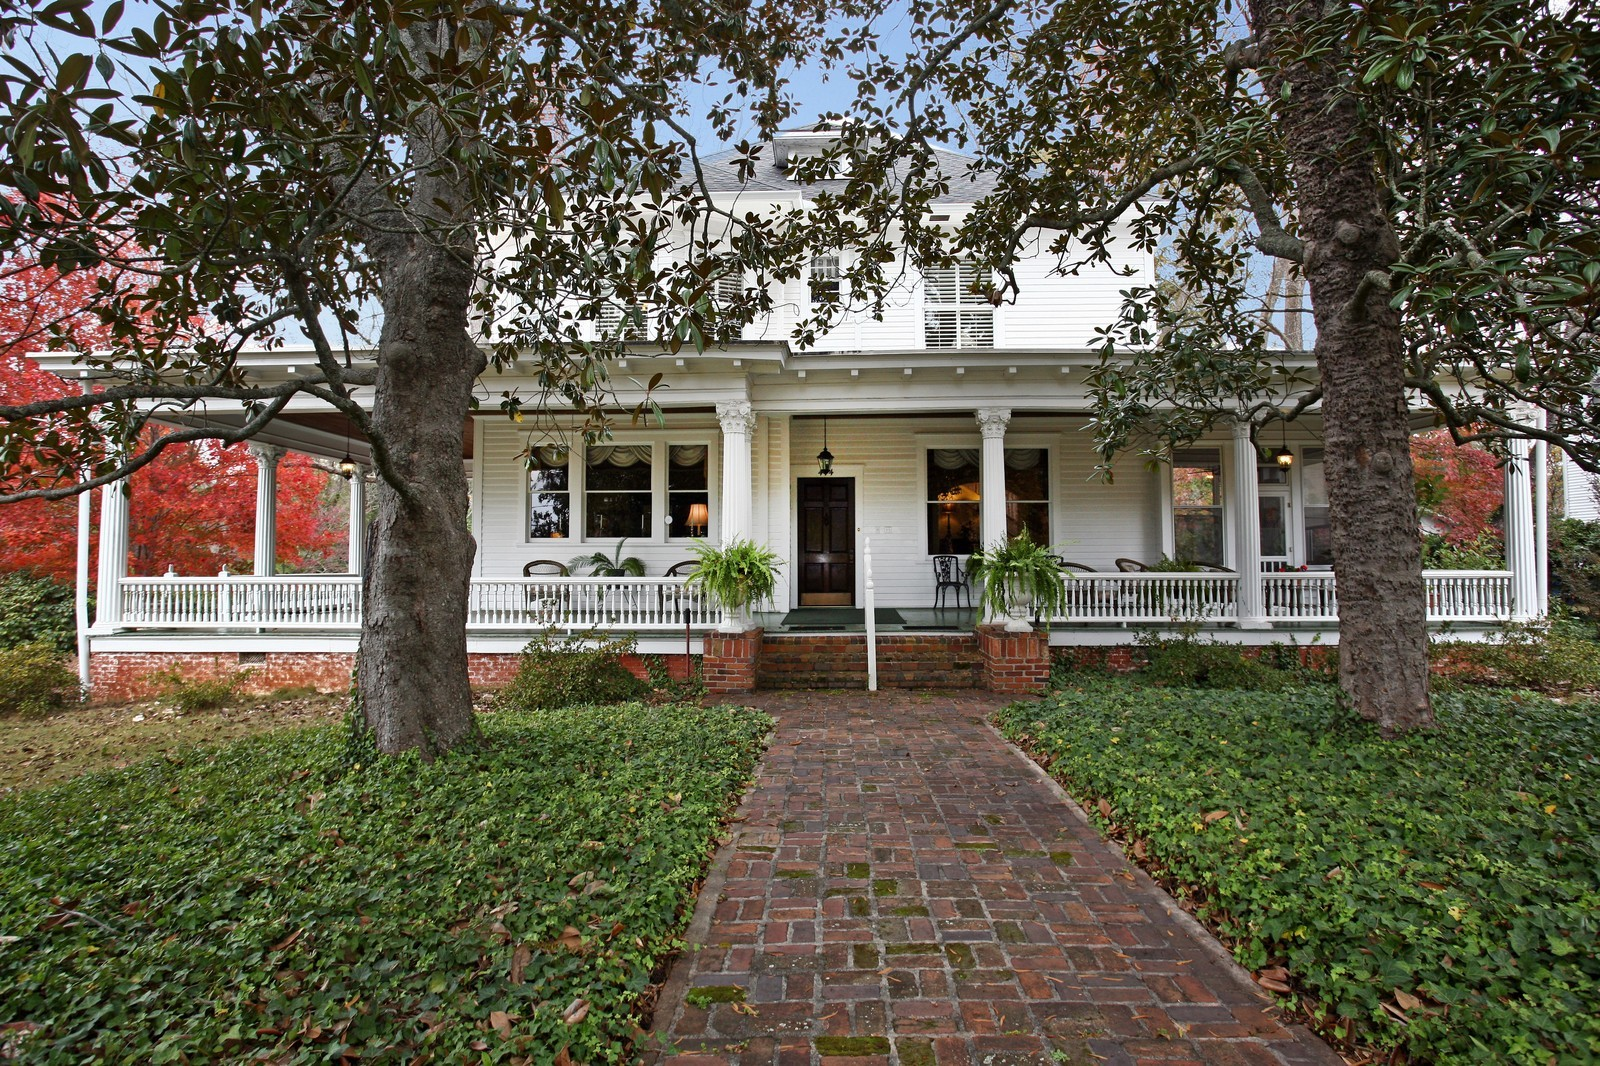 Real Estate Photography - 414 N 14th St, Lanett, AL, 36863 - Front View